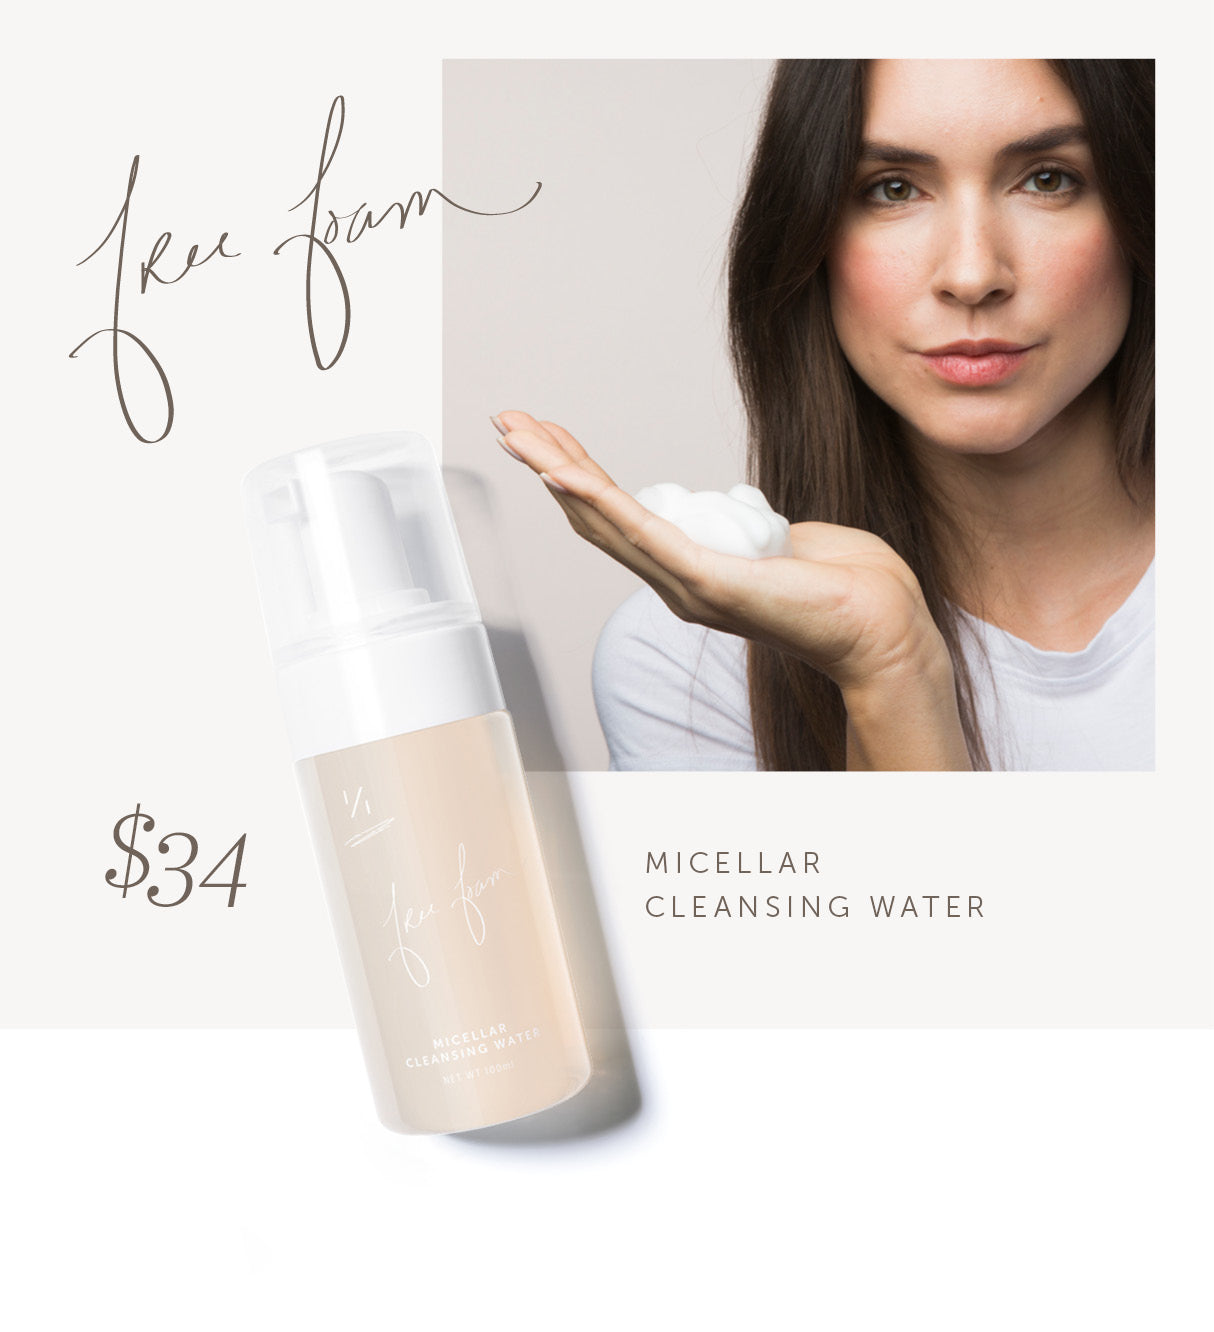 Free Foam Natural Micellar Water Facial Cleanser by One Over One™ Natural Cosmetics